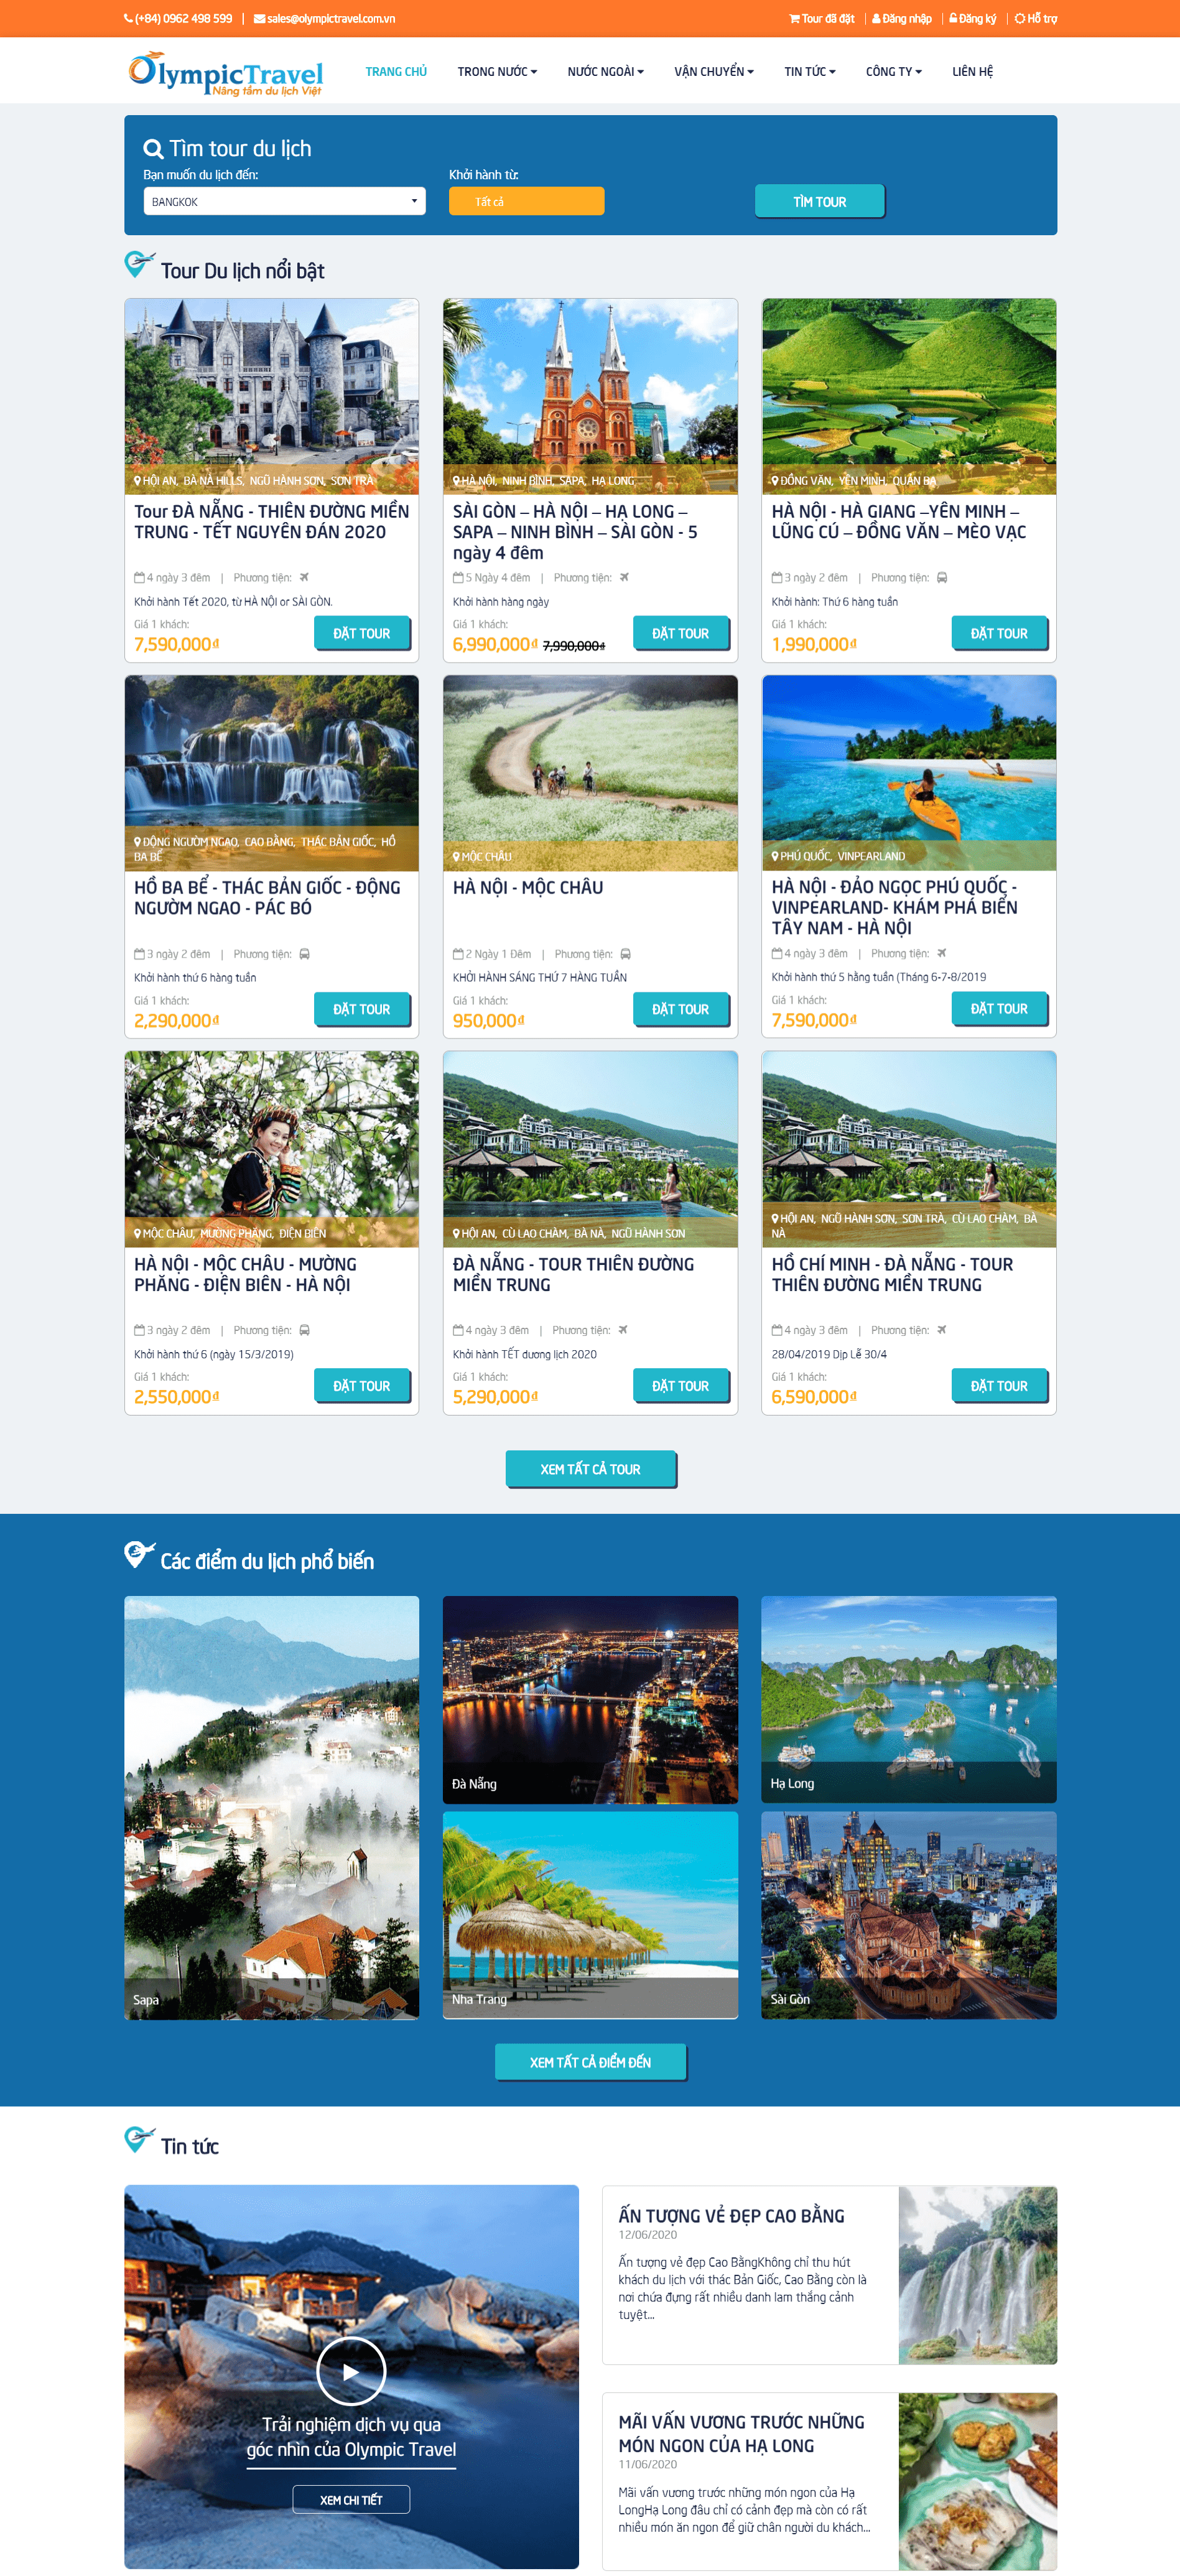 Lam-website-olympictravel